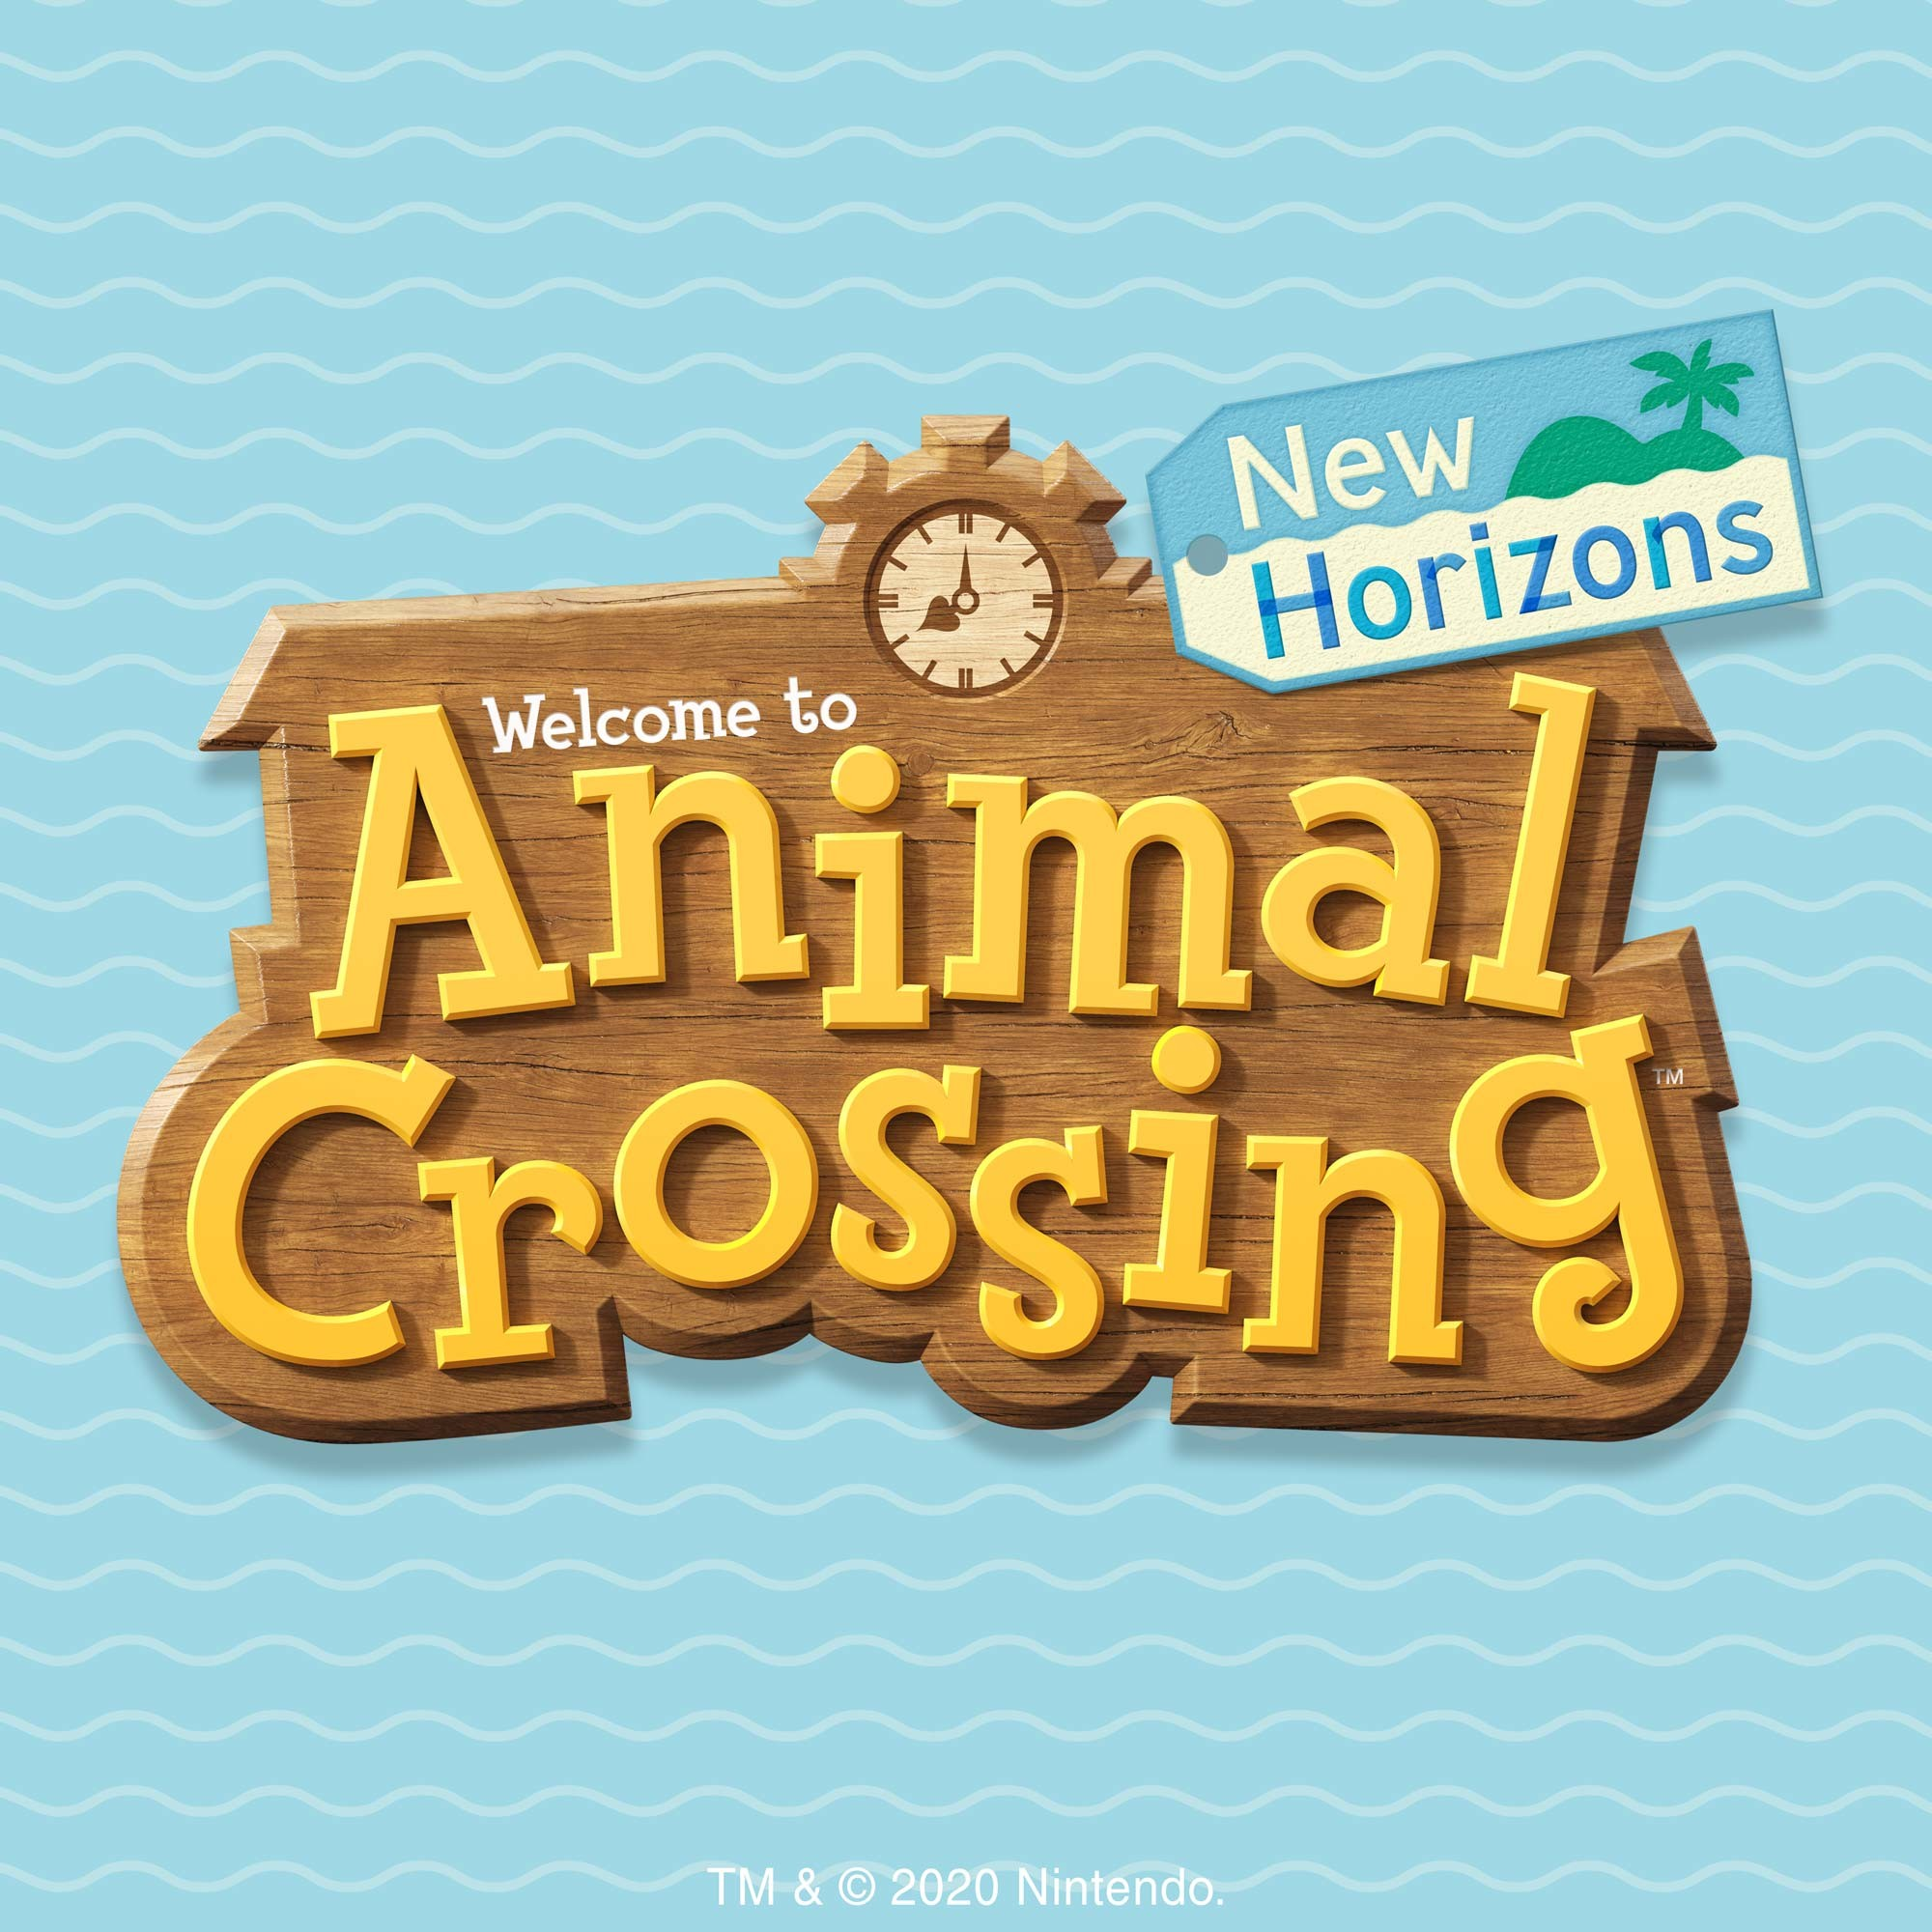 Animal Crossing Line Art Sticker Pack Image 1